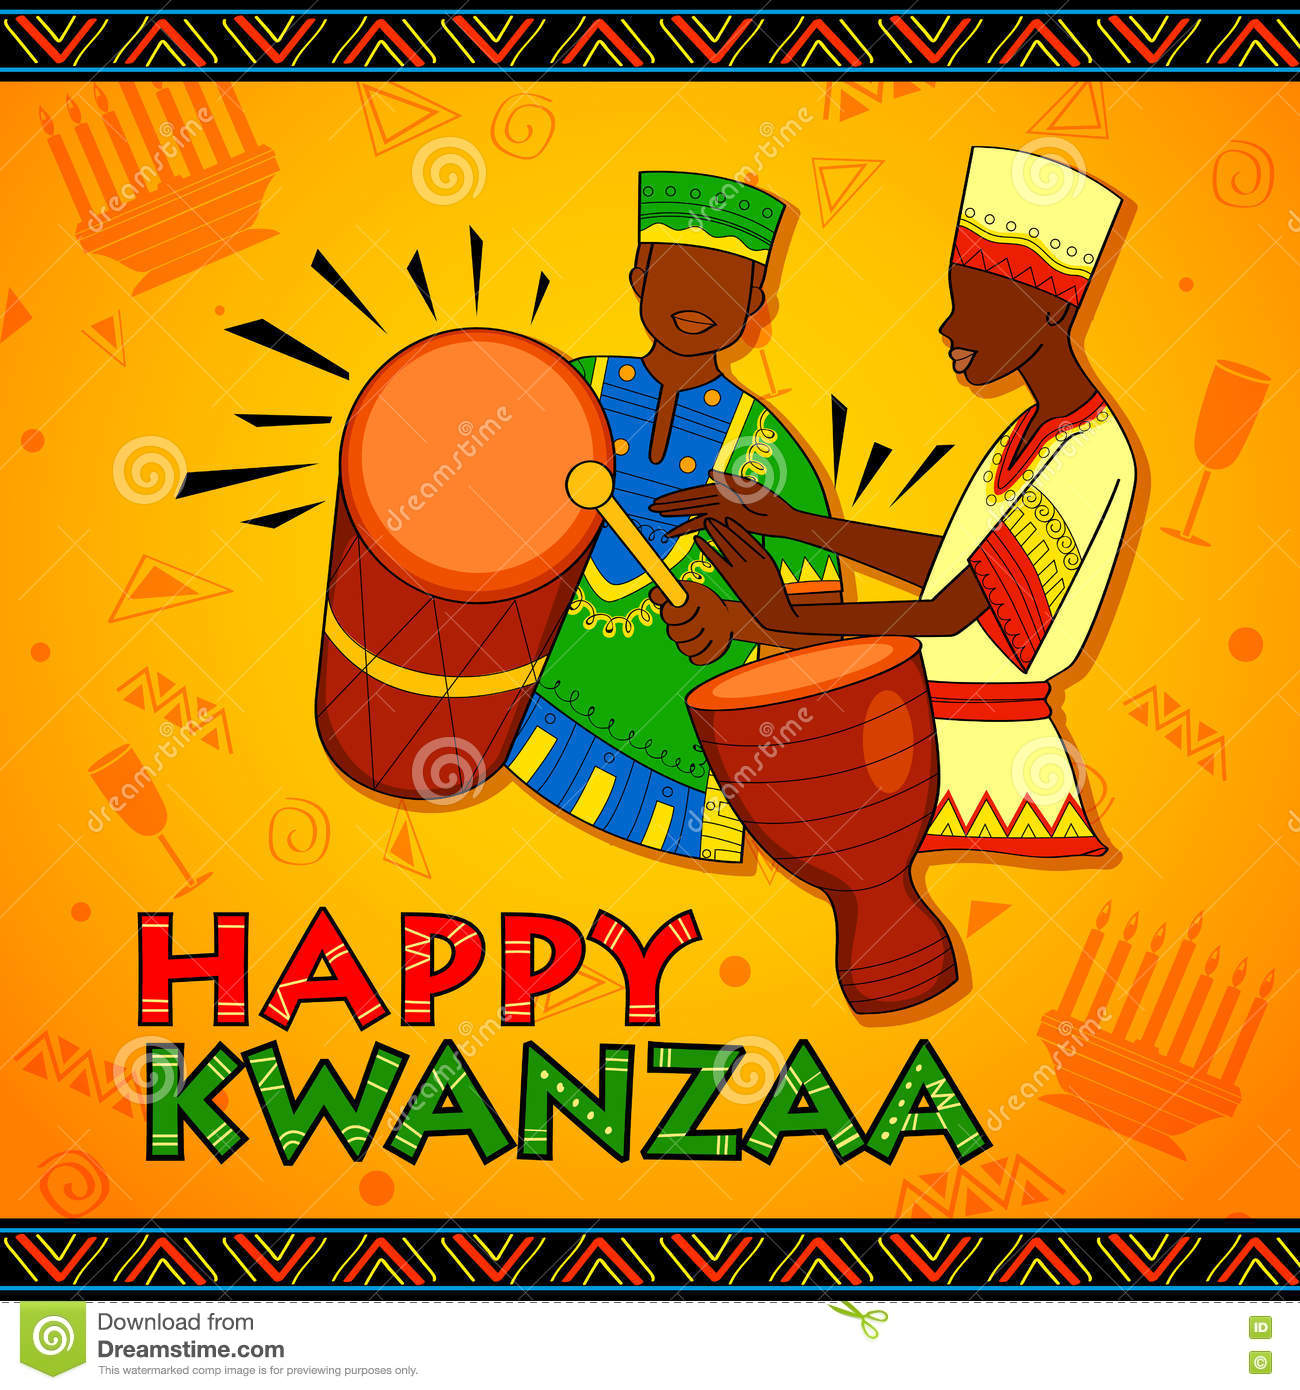 Happy kwanzaa greetings for celebration of african american holiday download comp m4hsunfo